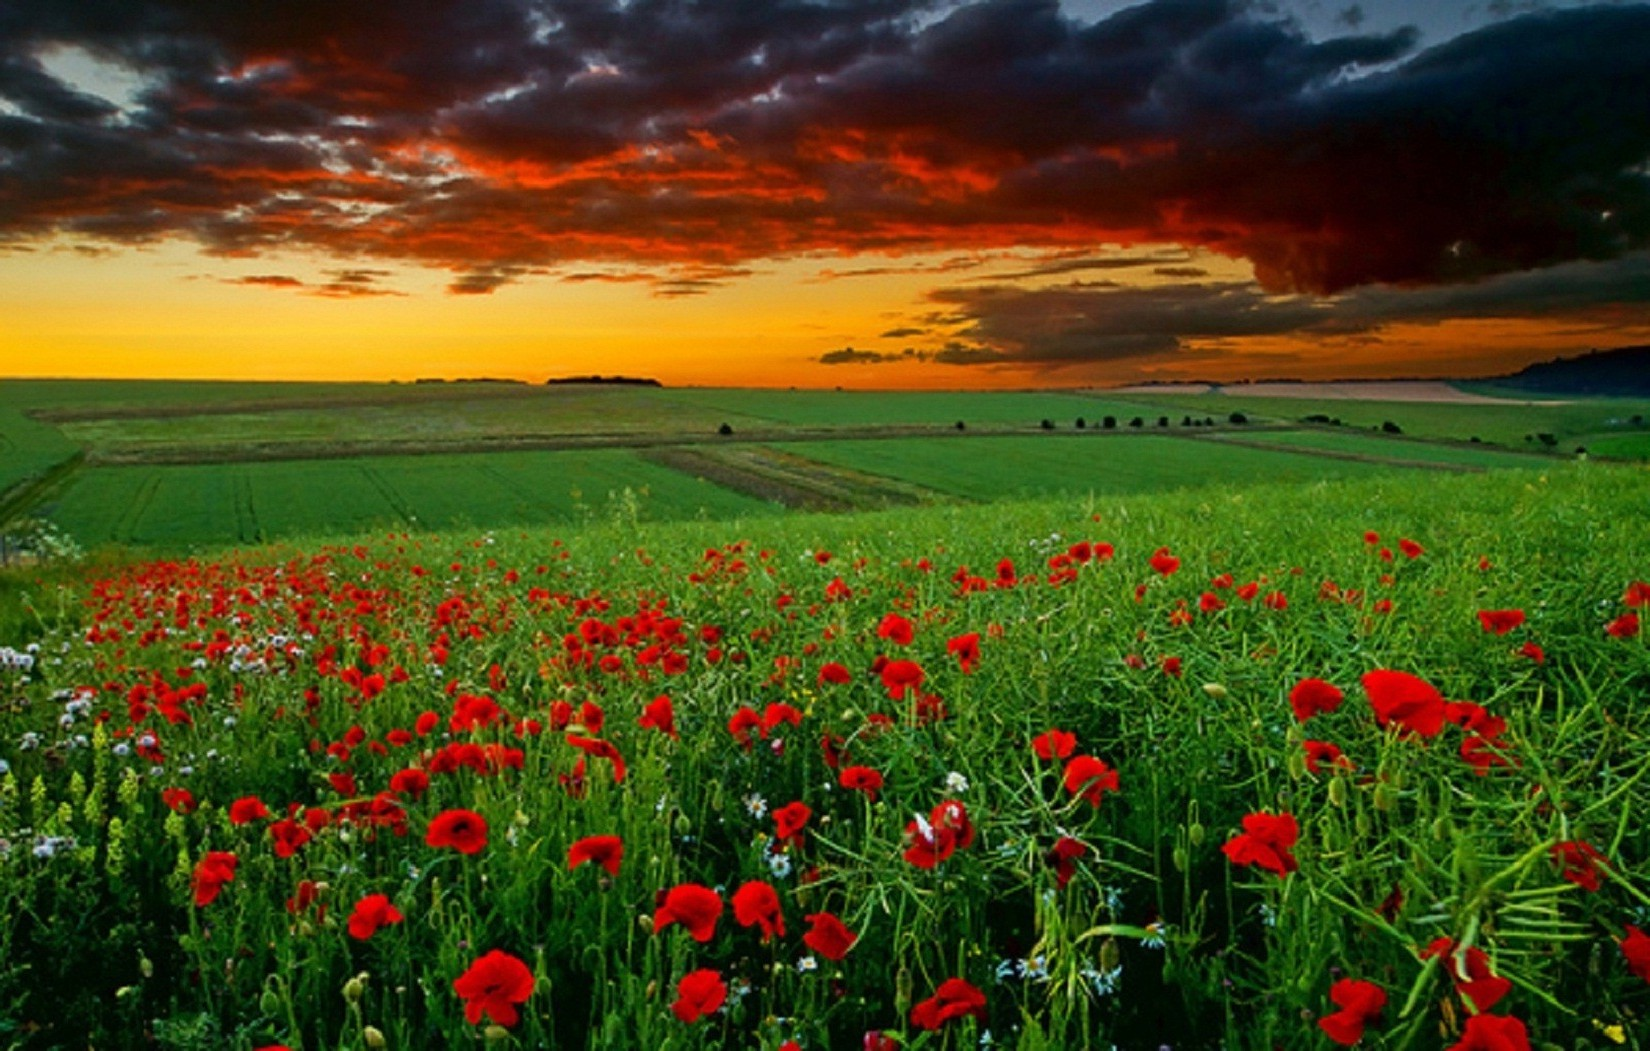 dawn and poppies